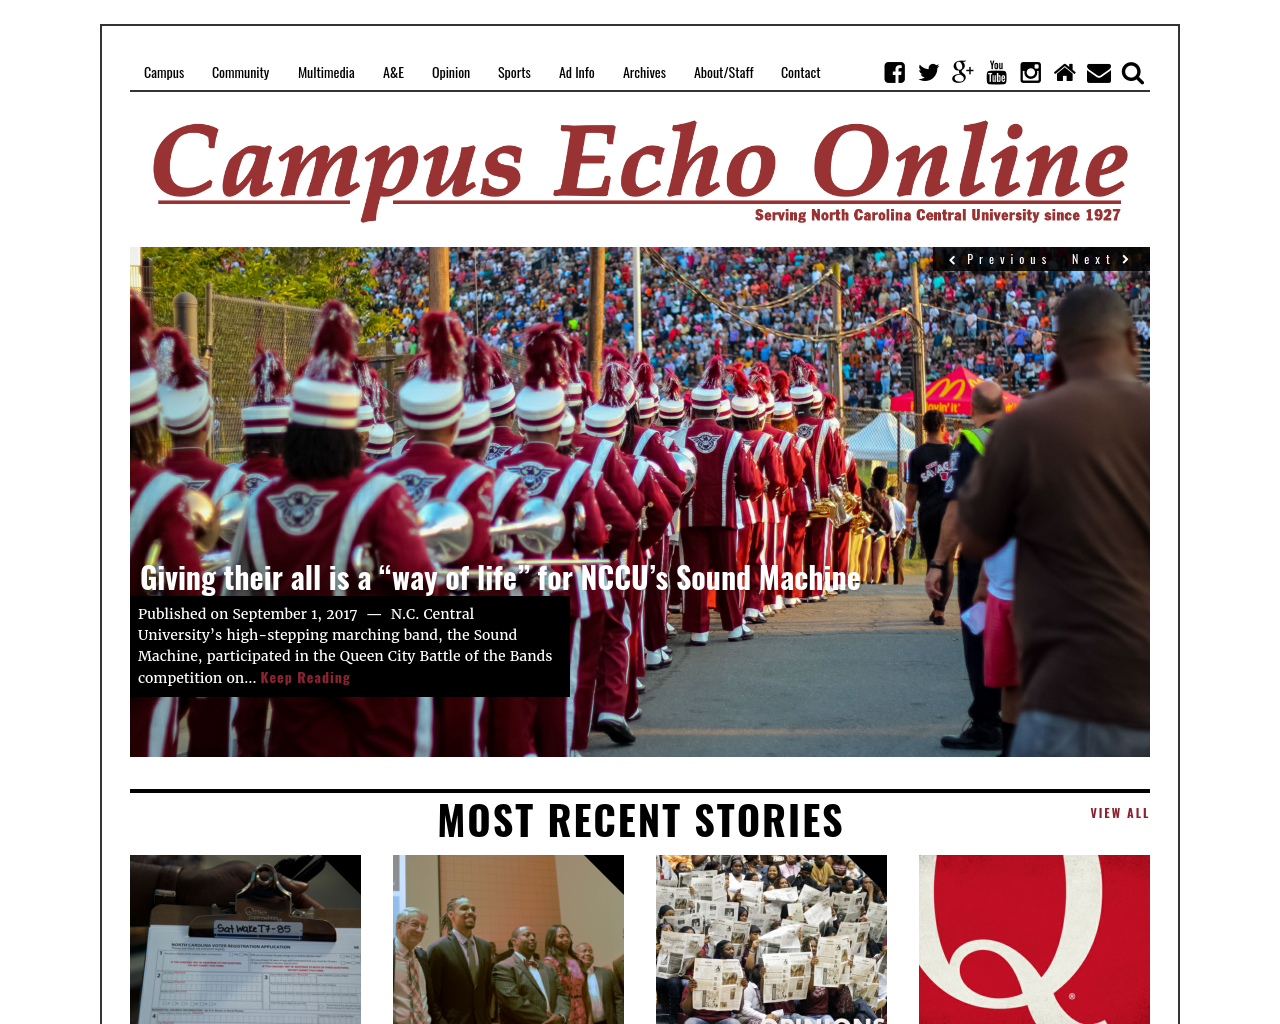 Campus-Echo-Online-Advertising-Reviews-Pricing